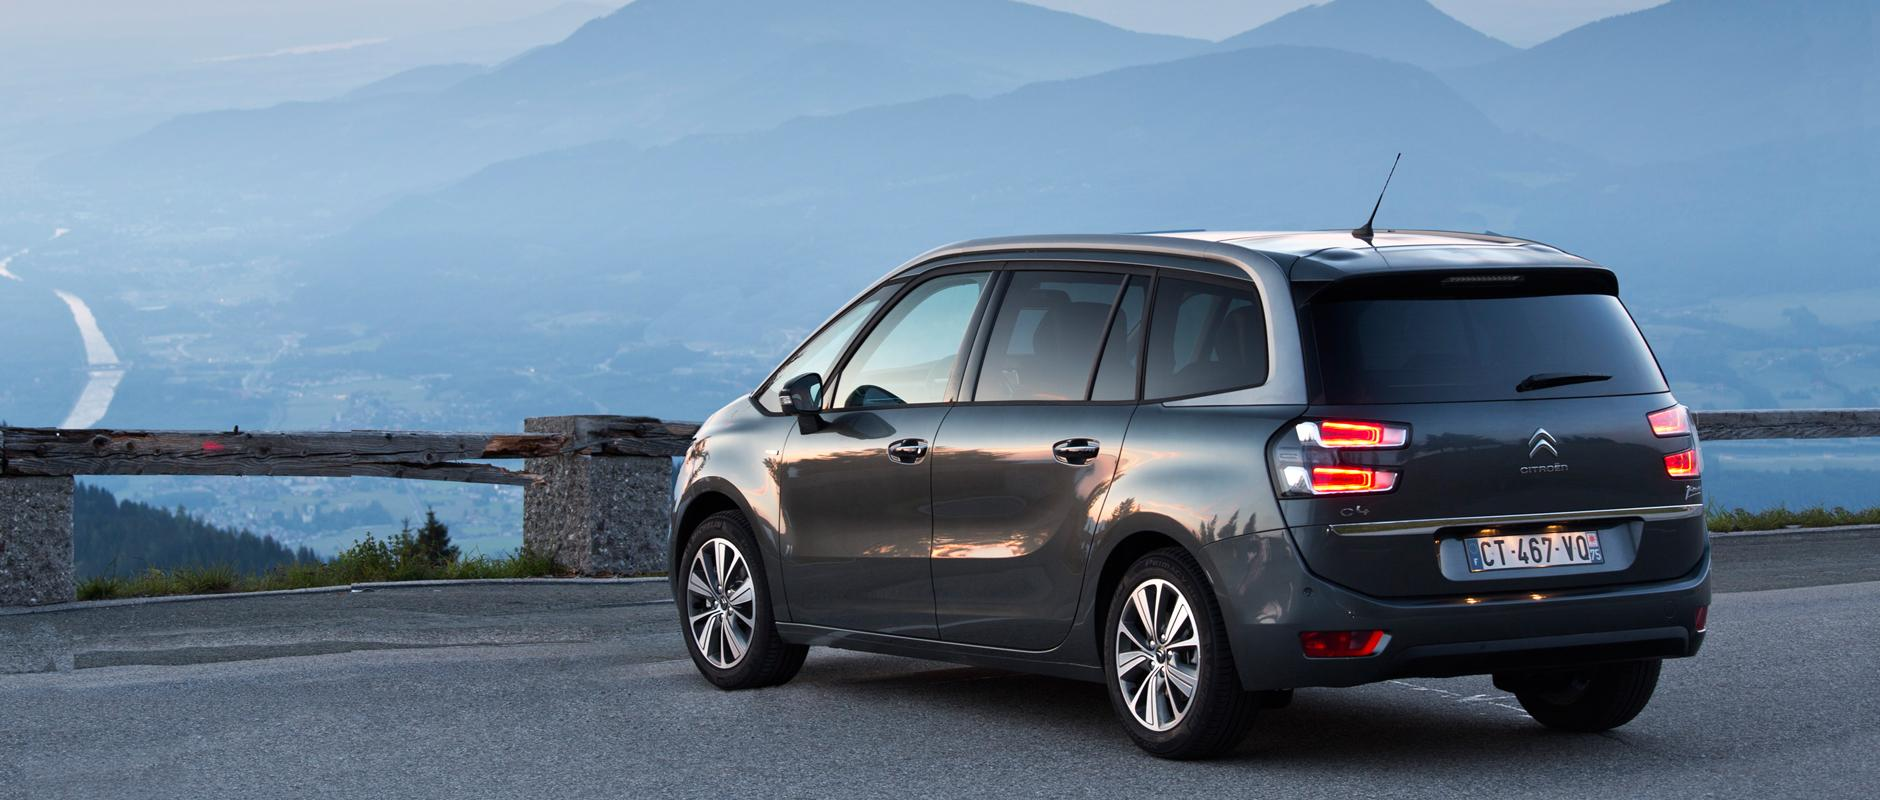 univers-citroen-grand-c4-picasso